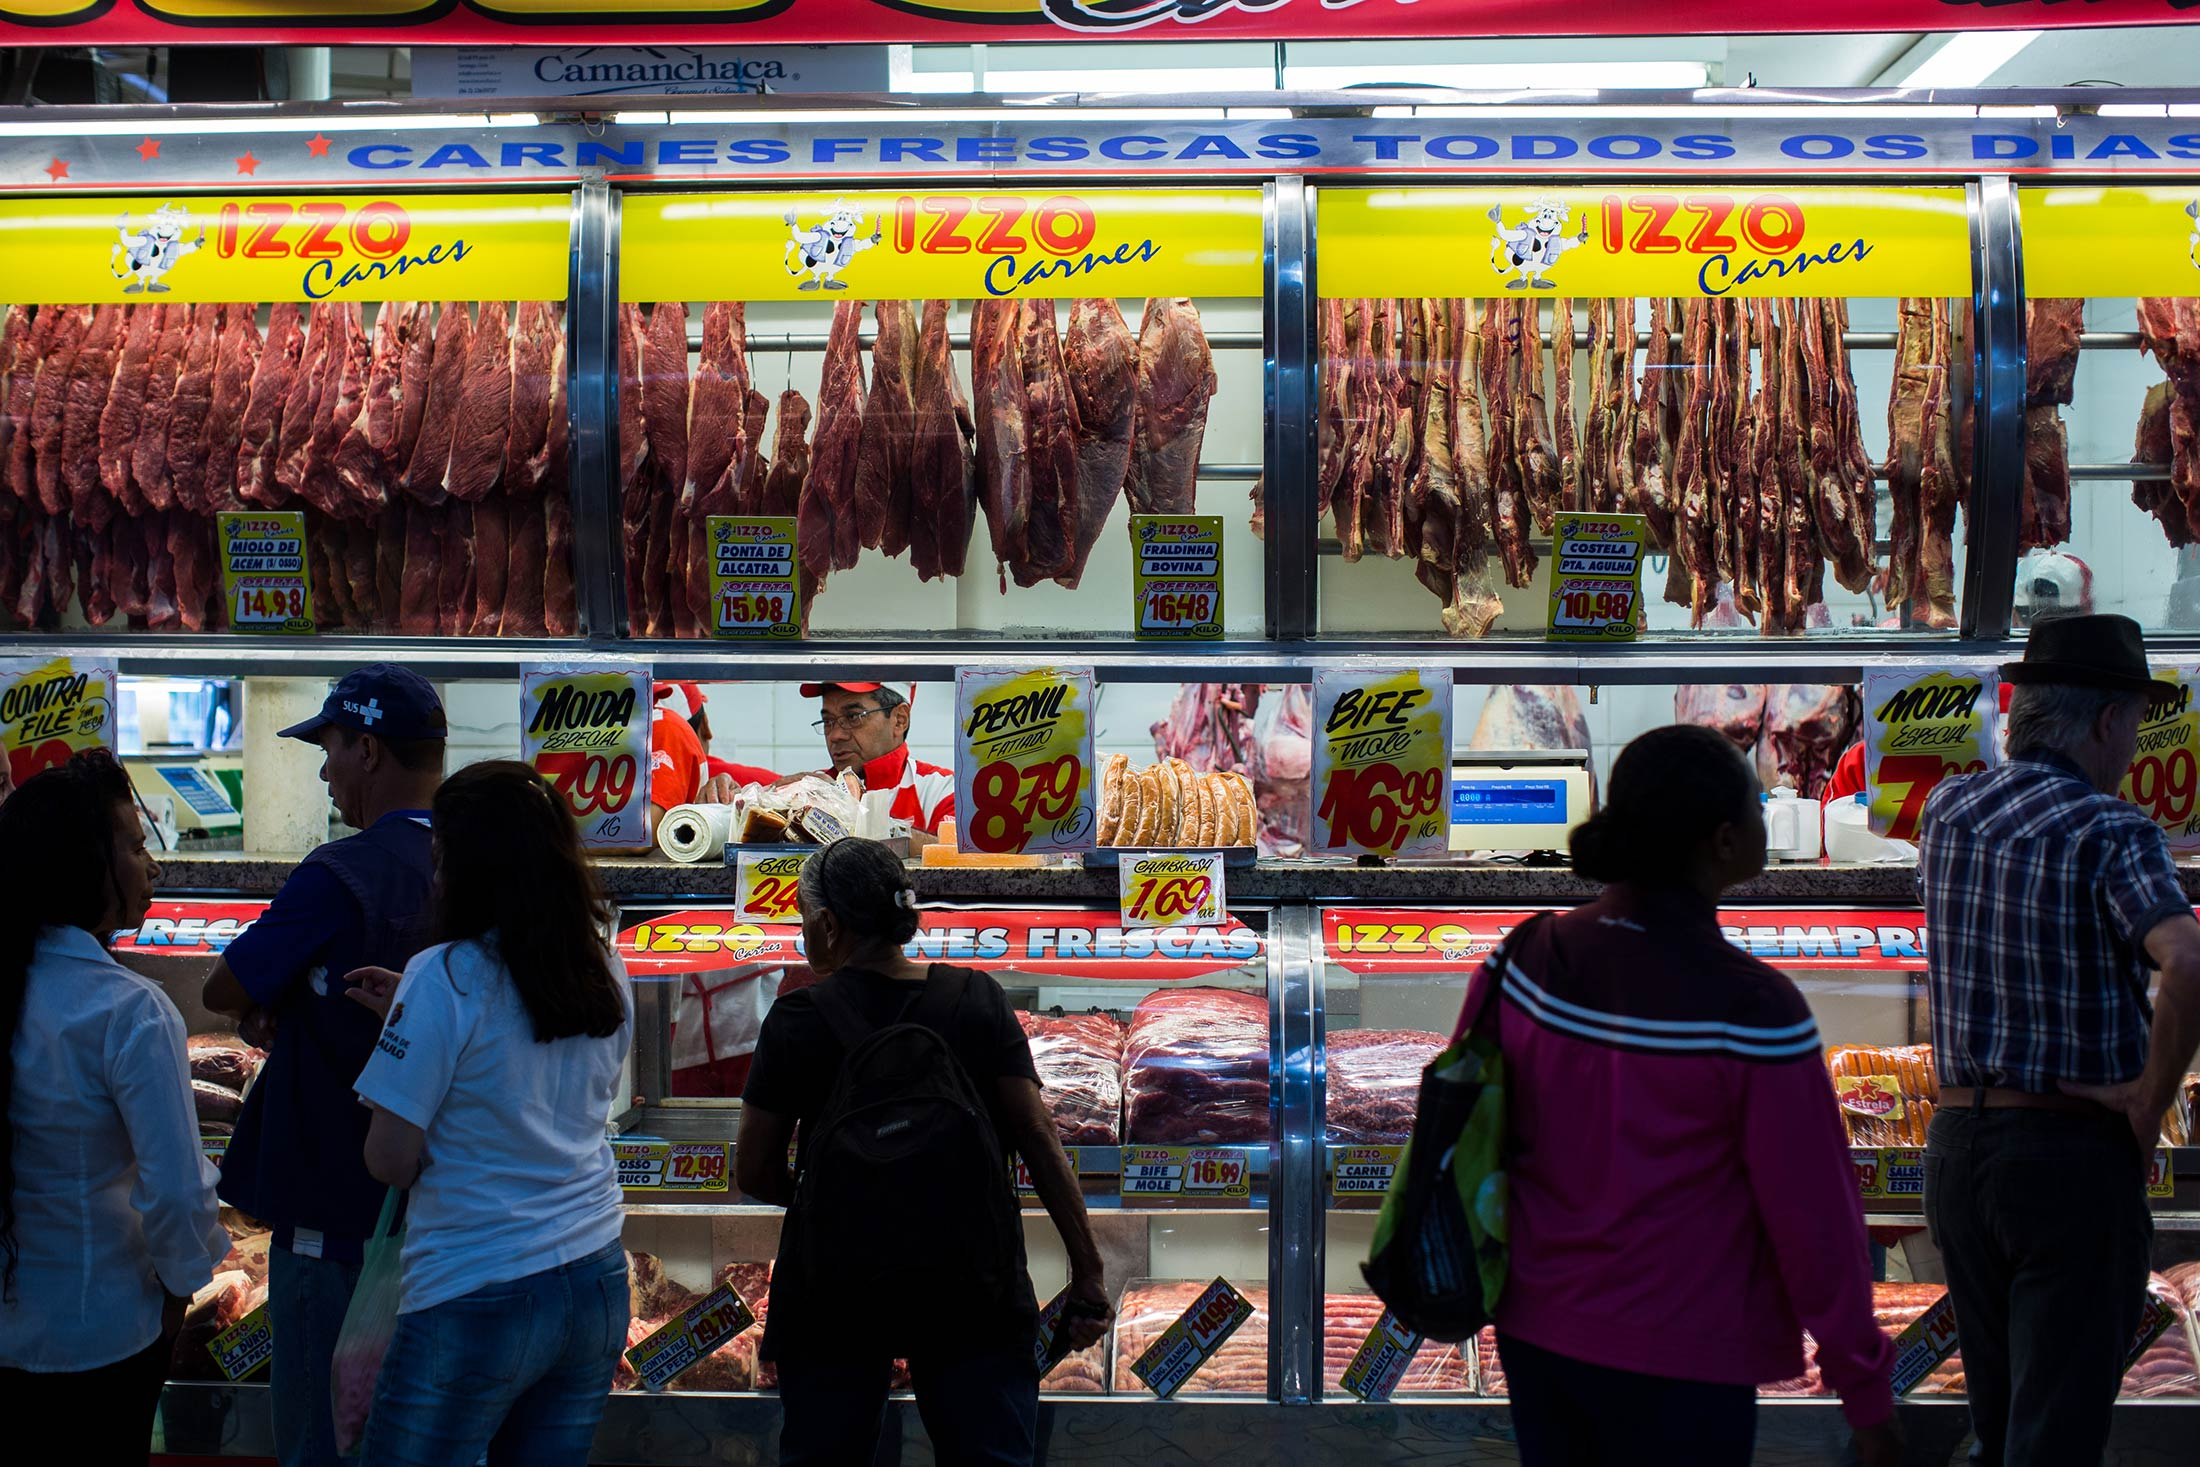 Gedicht Nieuwe Badkamer : Brazil hails victory as china chile and egypt lift meat ban bloomberg